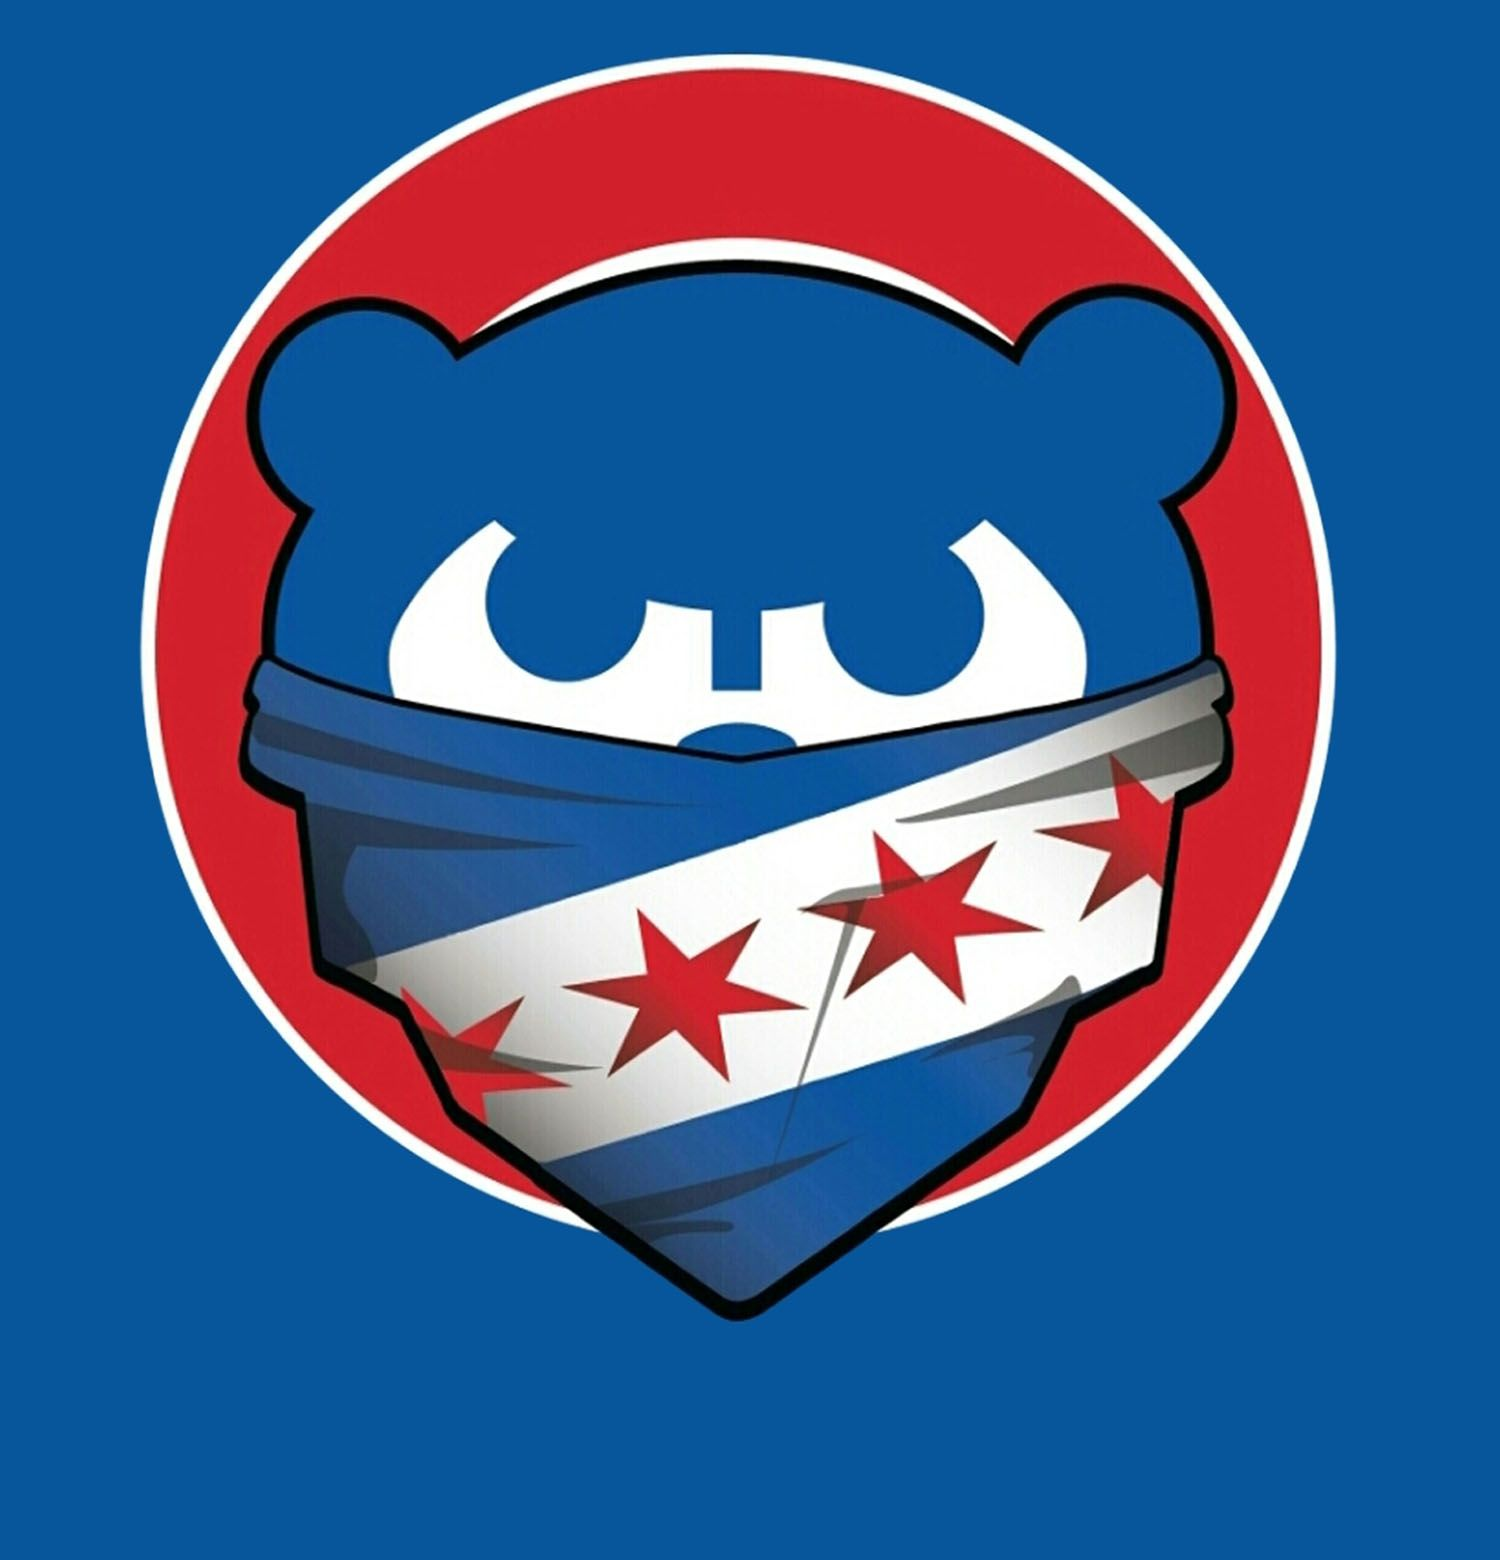 Chicago cubs city of chicago bandana scarf flag t shirt chicago chicago cubs city of chicago bandana scarf flag t shirt buycottarizona